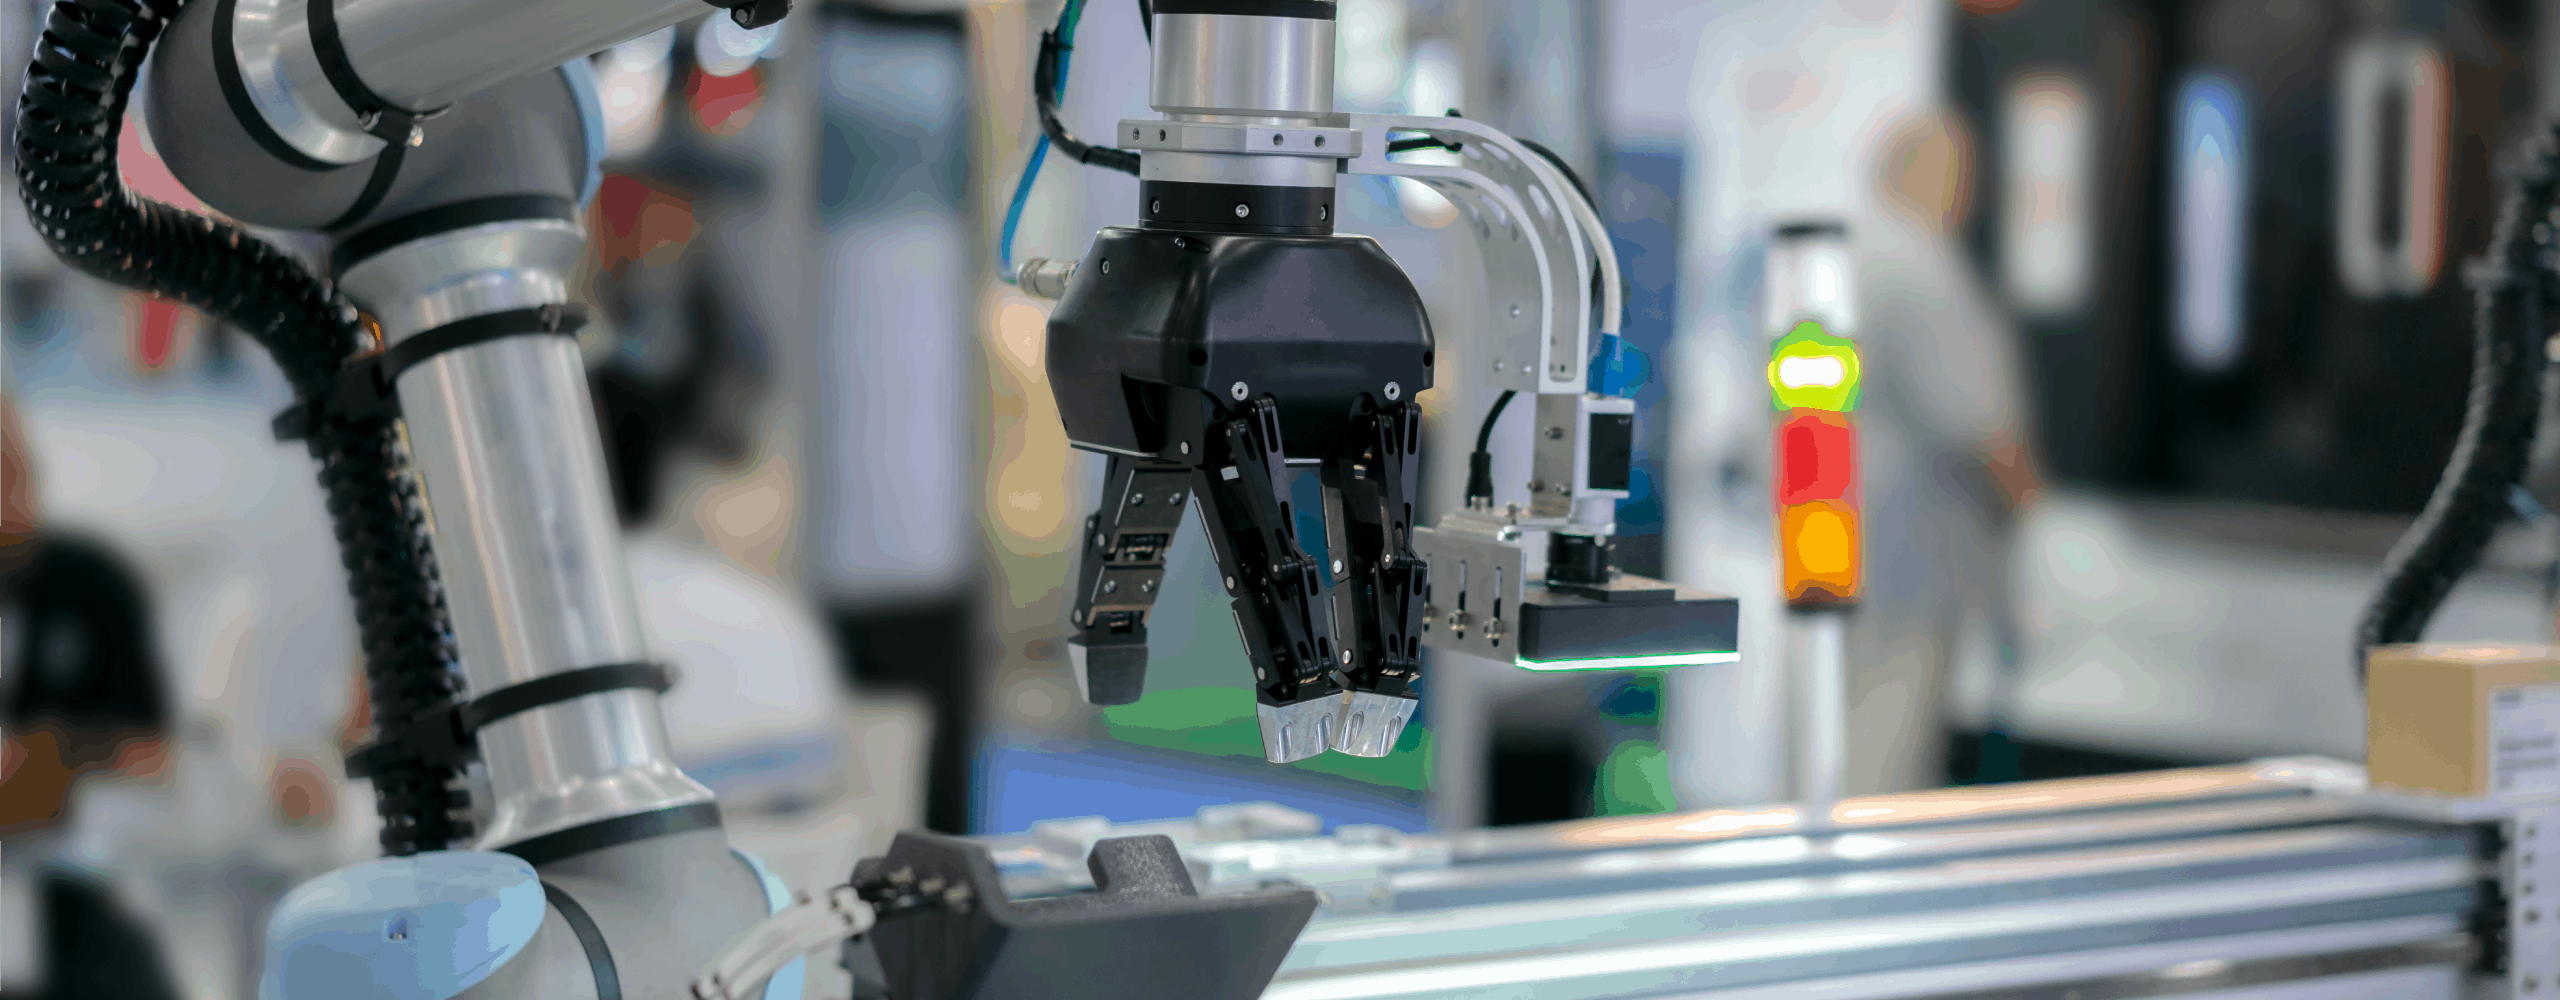 Cobot arm working in a factory